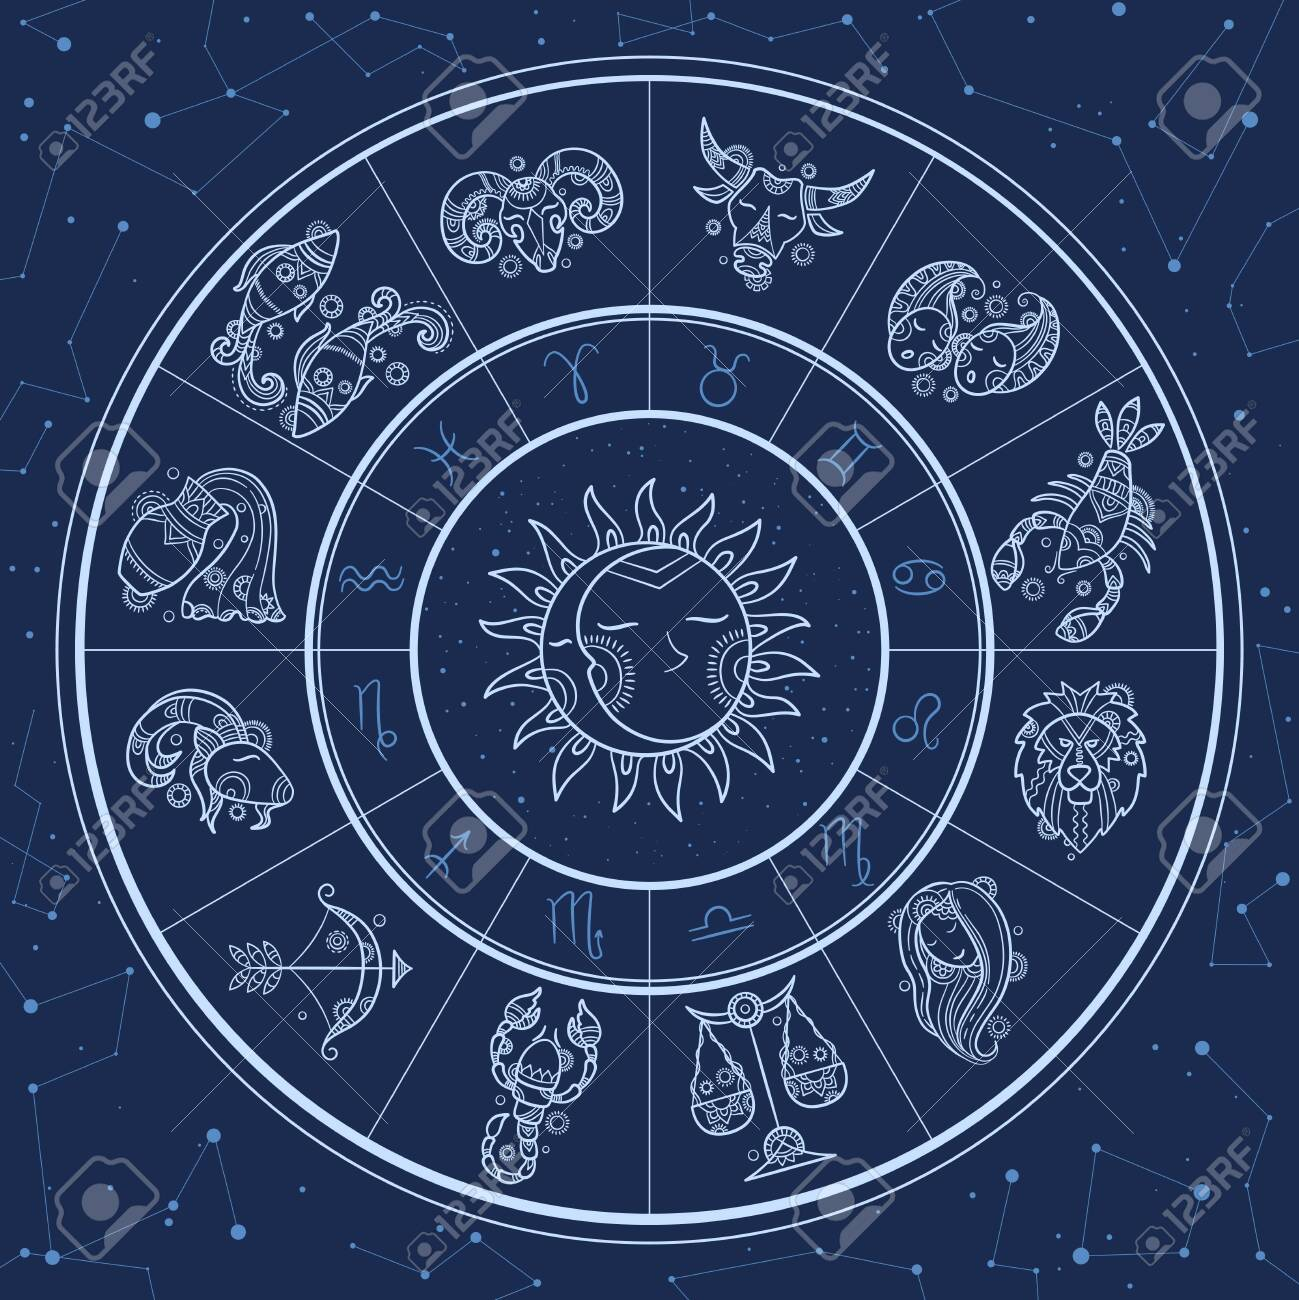 Astrology circle  Magic infographic with zodiac symbols gemini